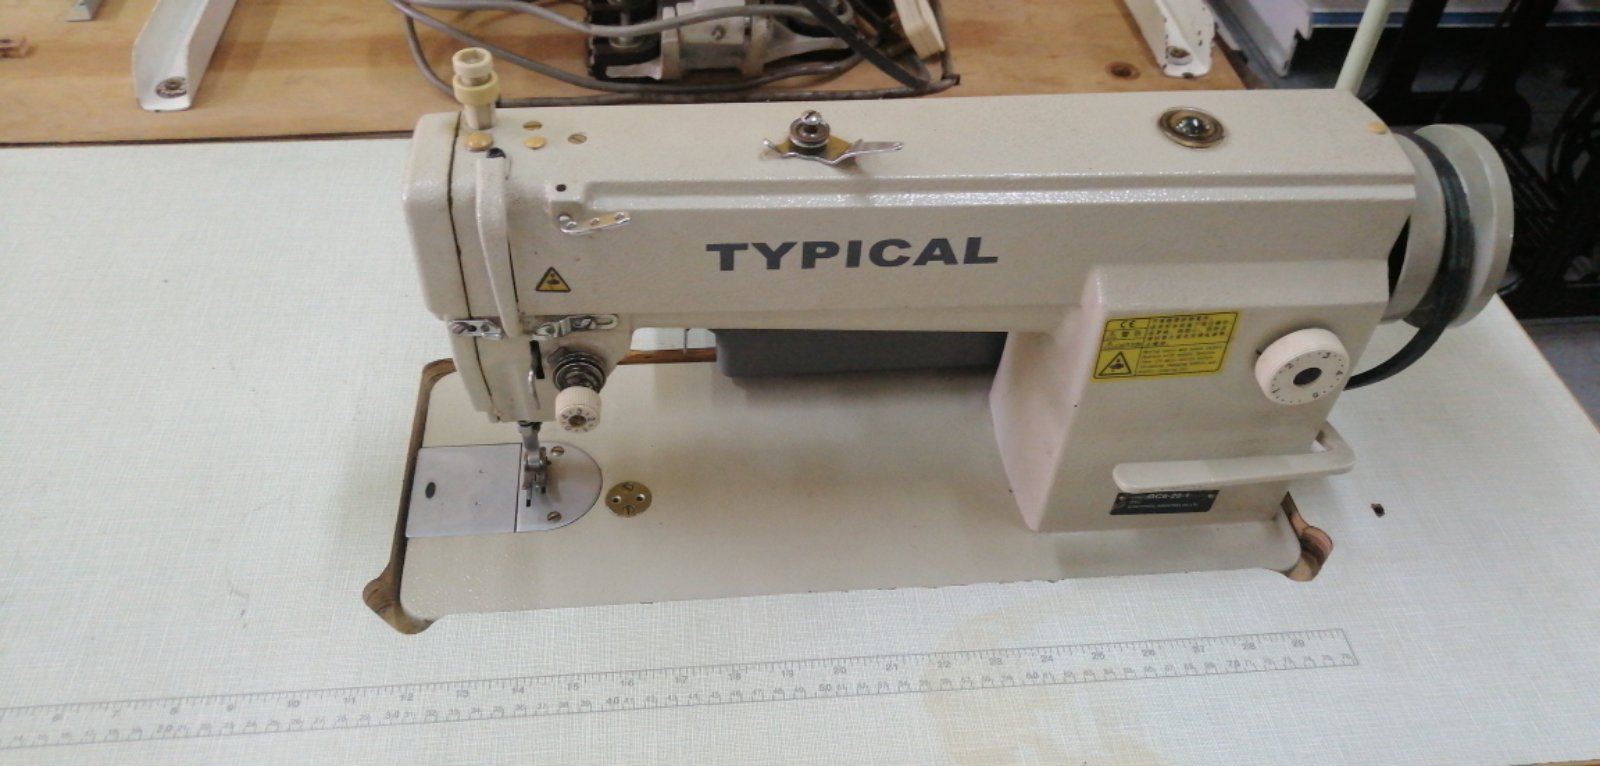 Second Hand Typical Hi Speed Sewing machine